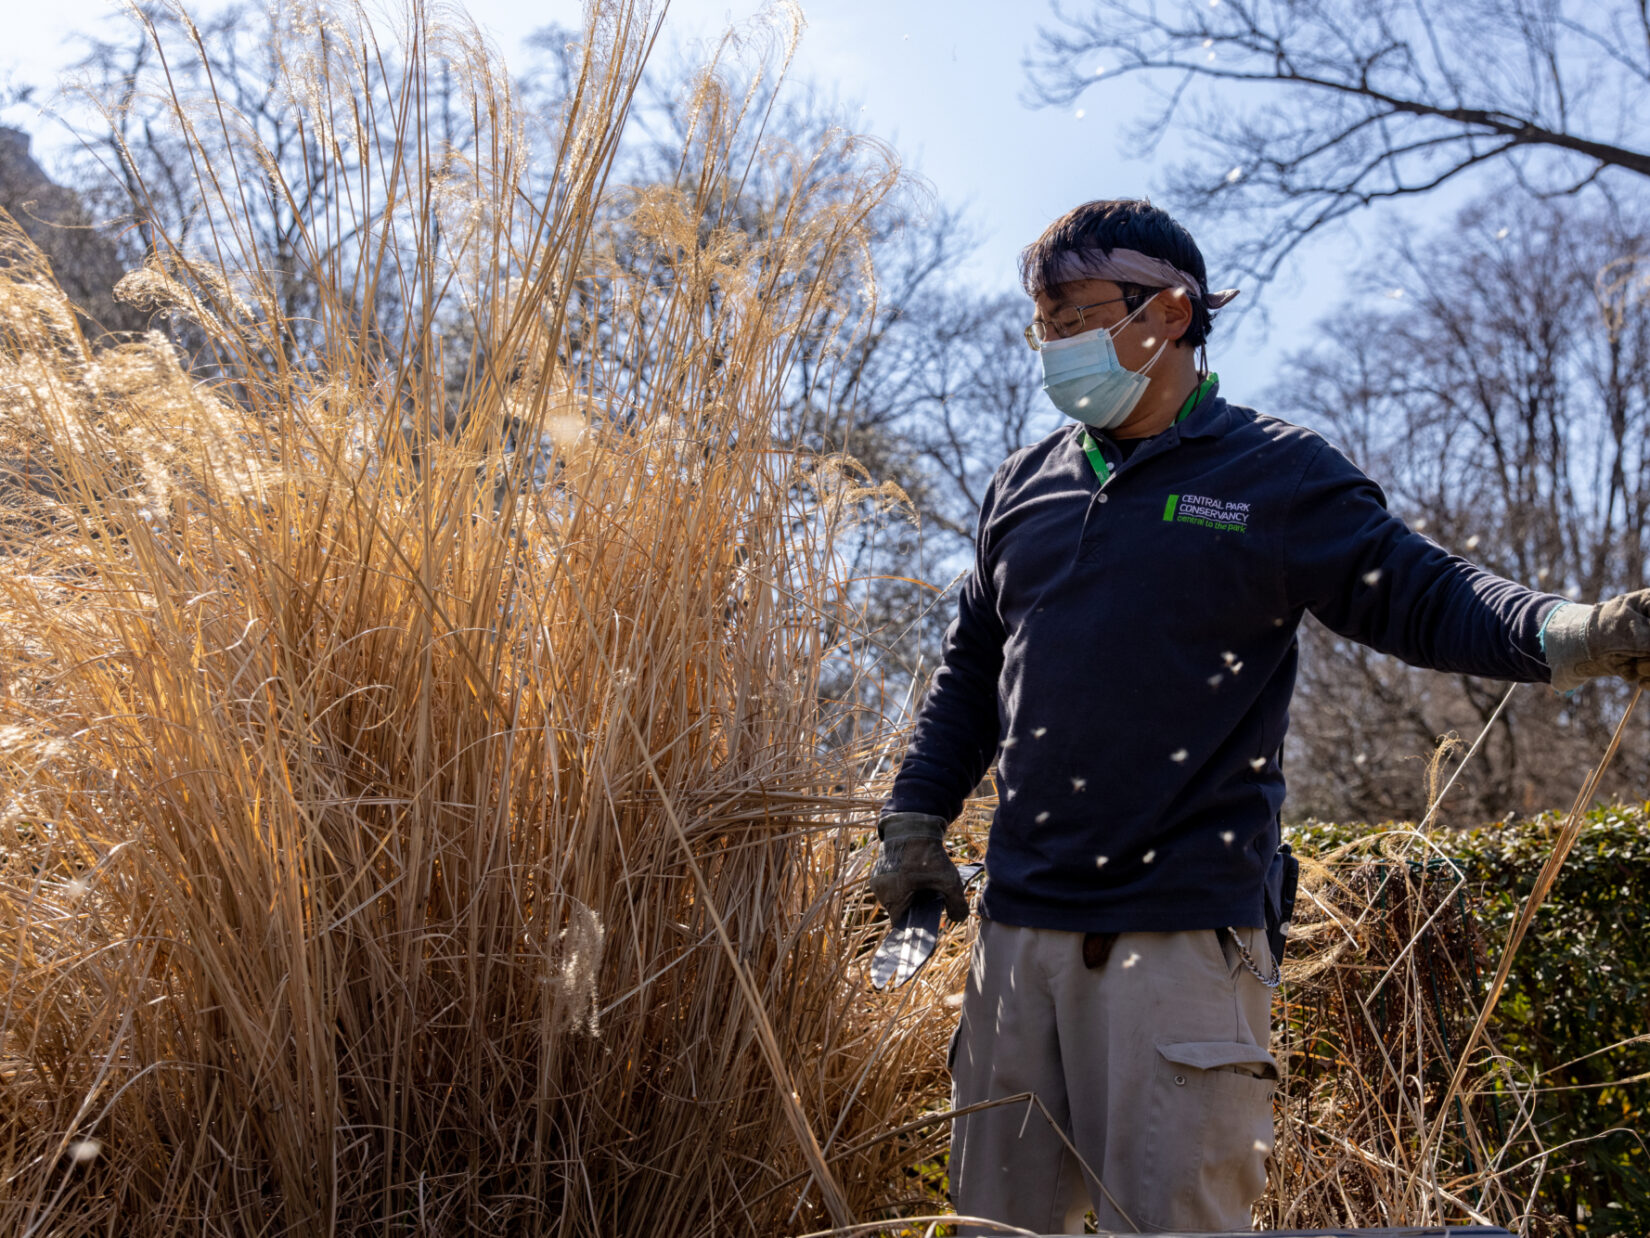 The Conservancy worker is shown confronting tall, yellowed stalks of miscanthus.